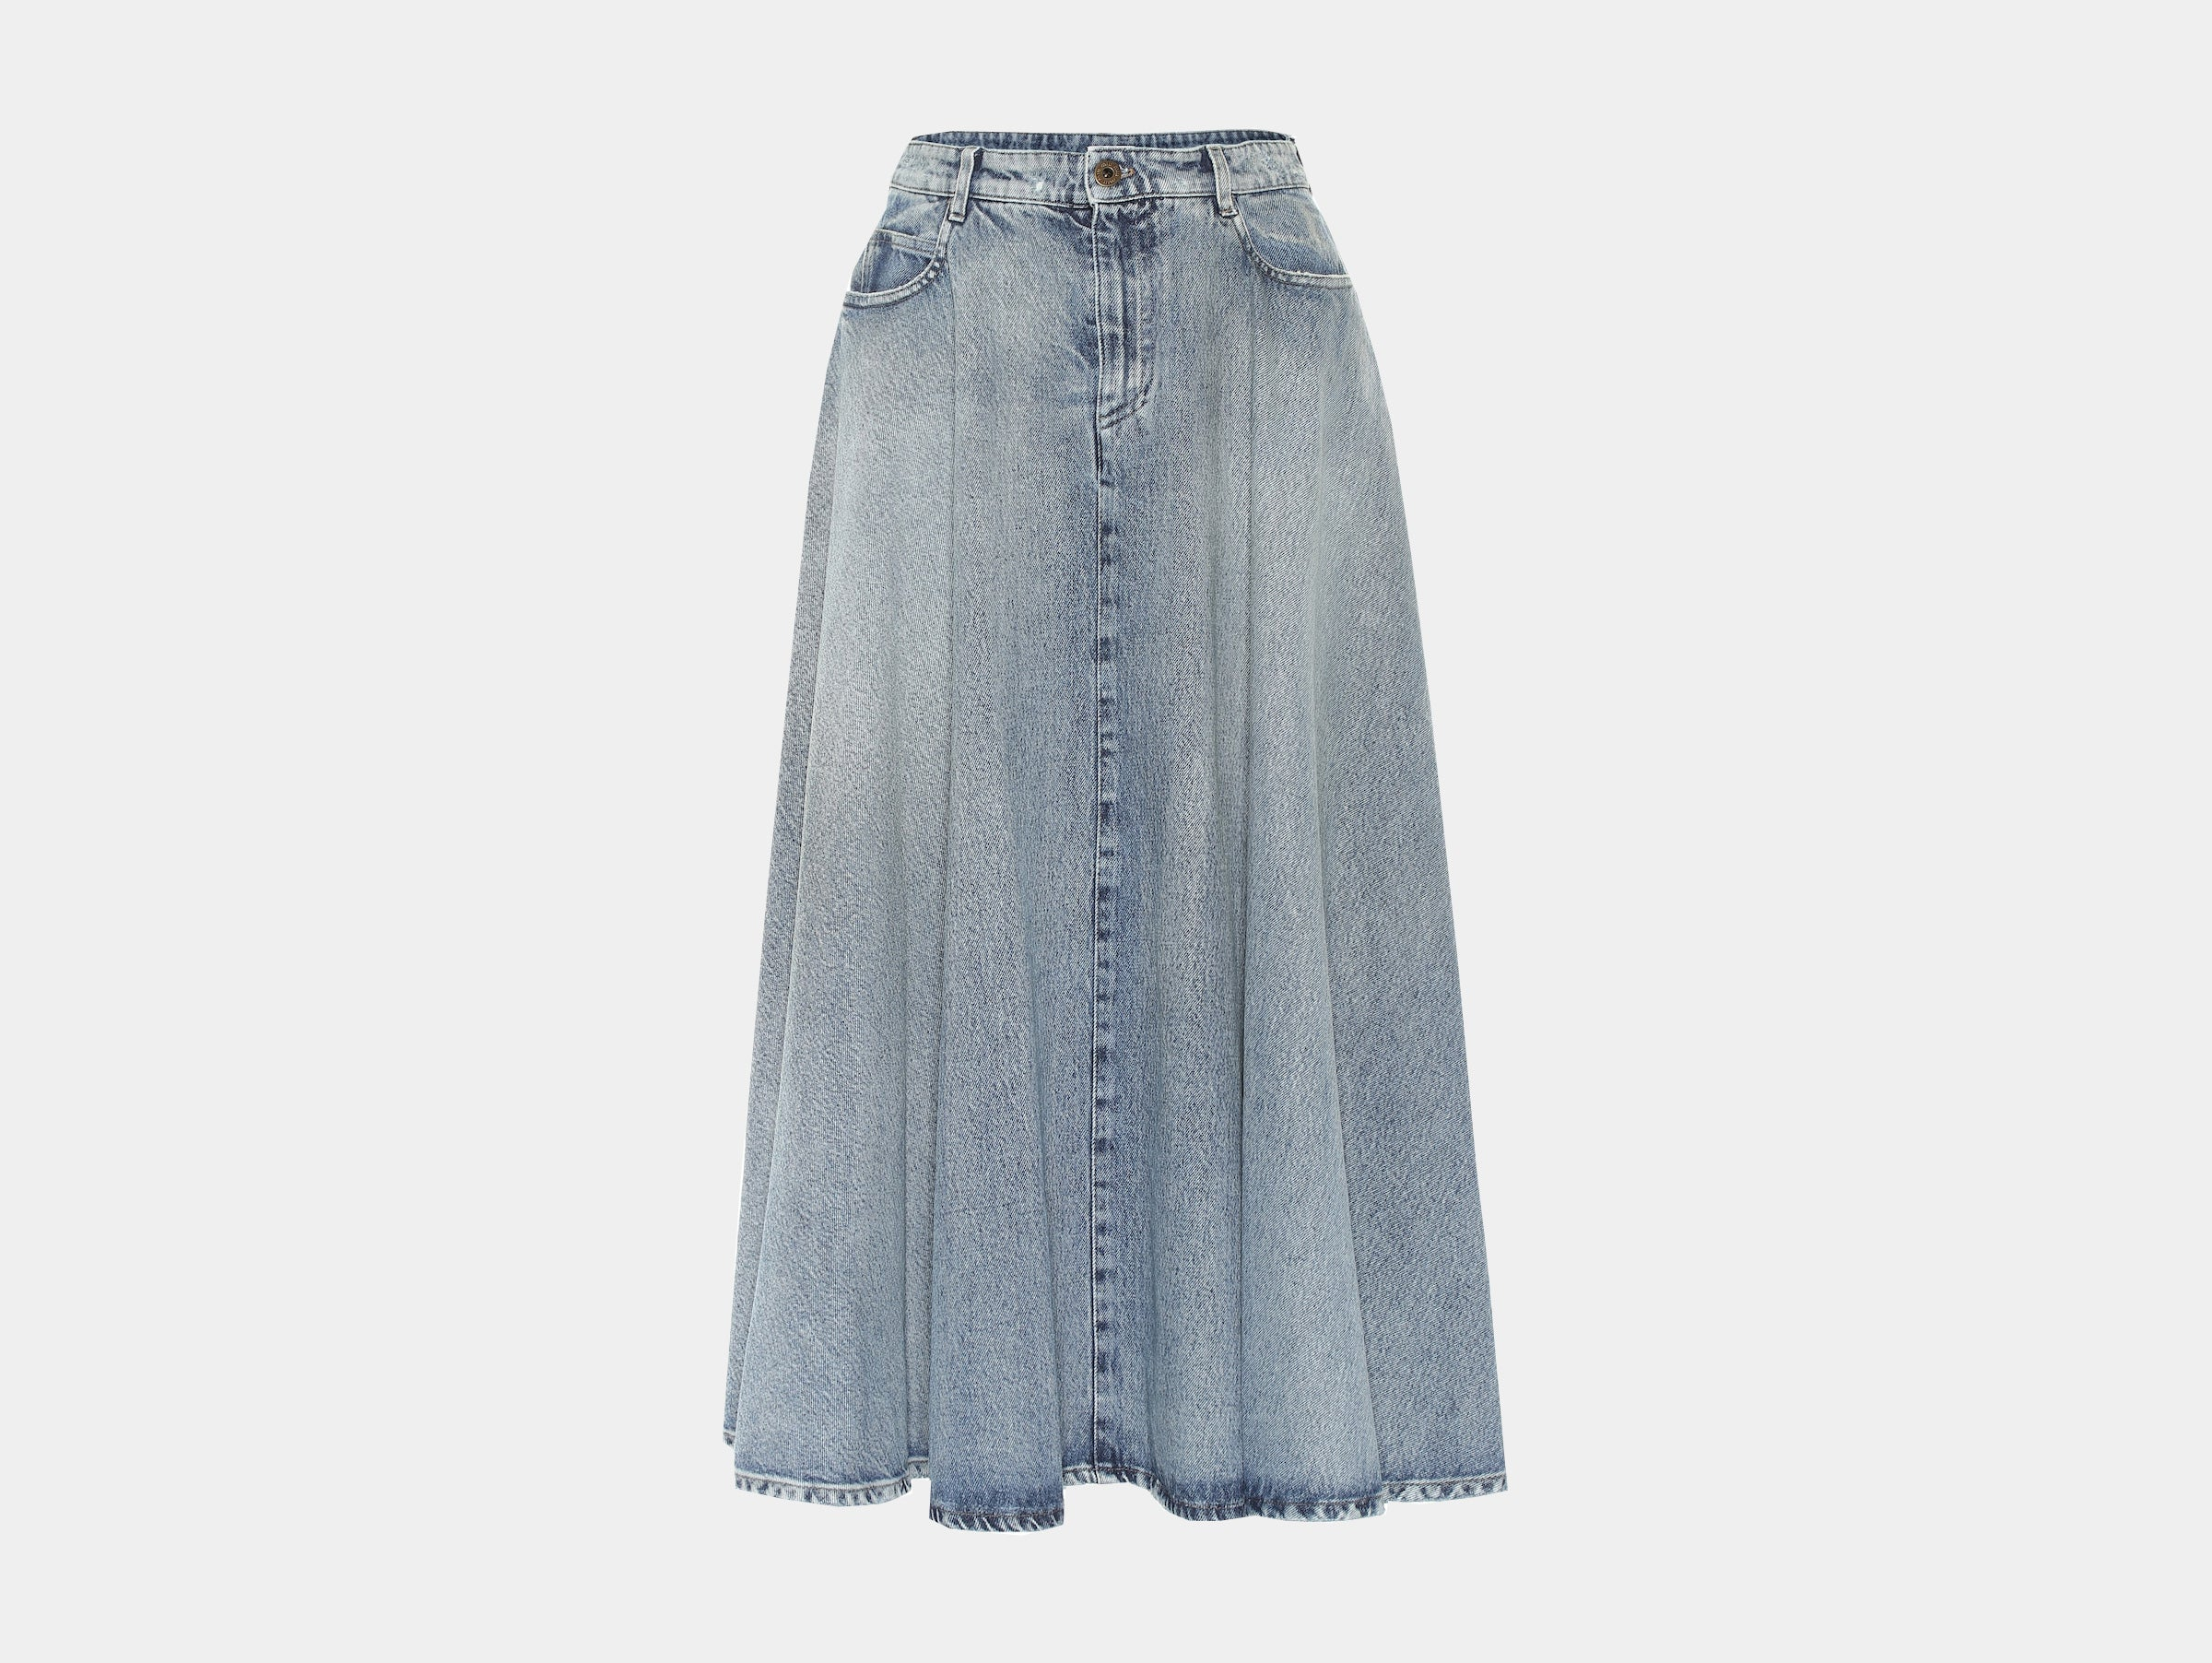 Miu Miu - Midi skirt denim midi skirt